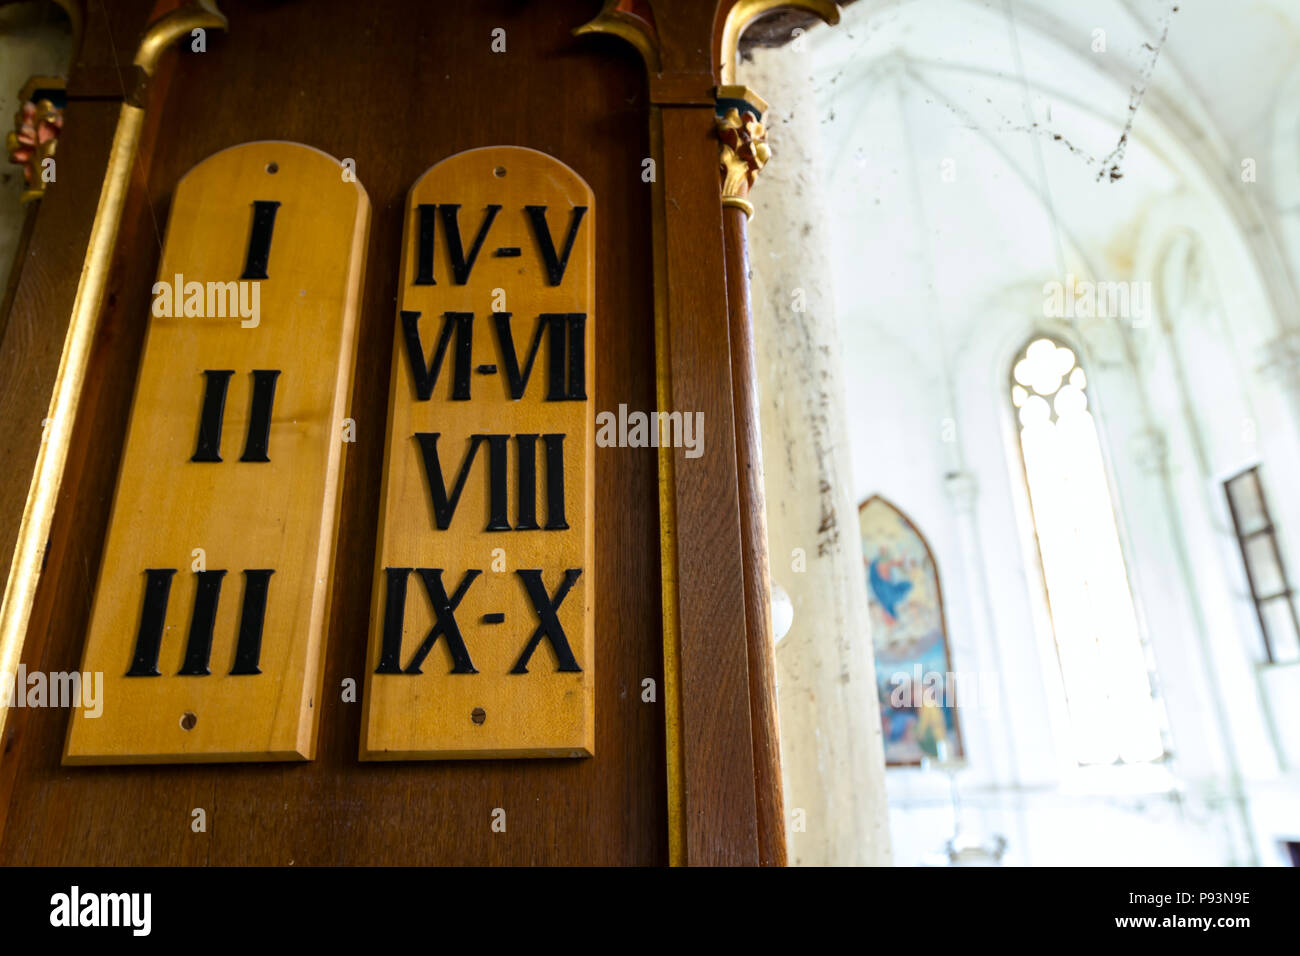 Ten Commandments are written on wooden board in Roman numbers. - Stock Image